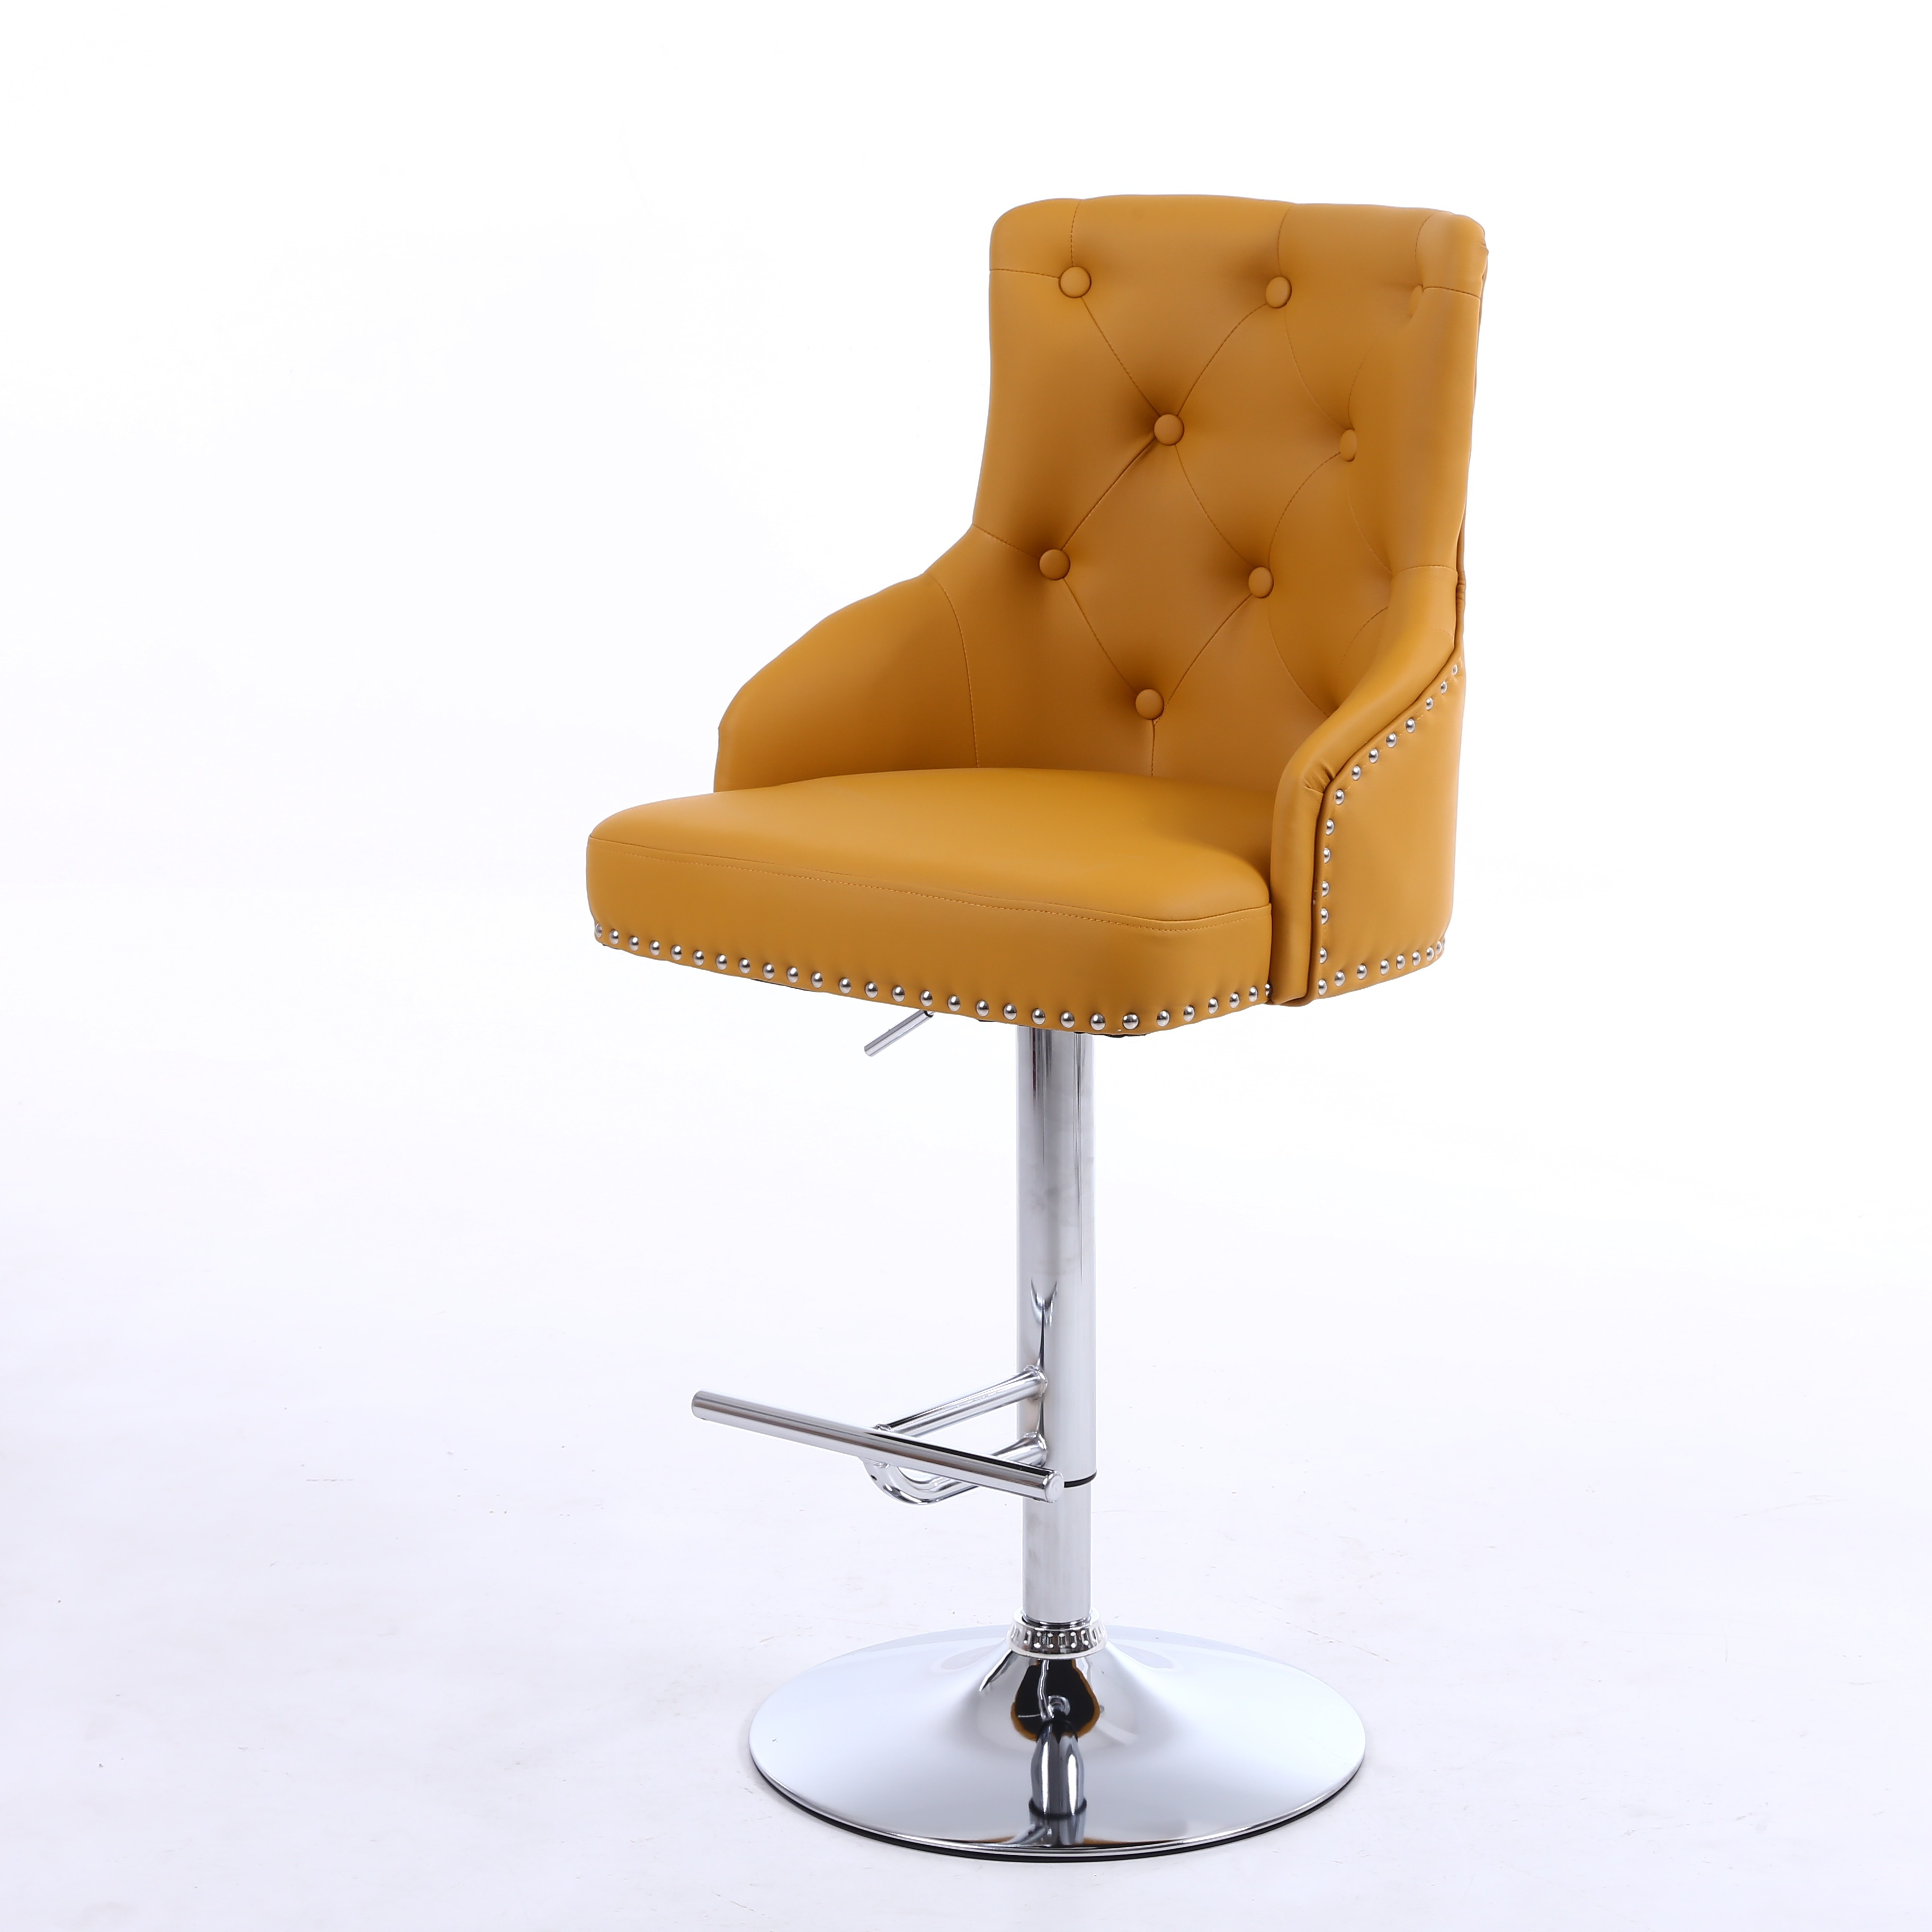 Awesome Rocco Yellow Leather Buttoned Back Bar Stool Inzonedesignstudio Interior Chair Design Inzonedesignstudiocom